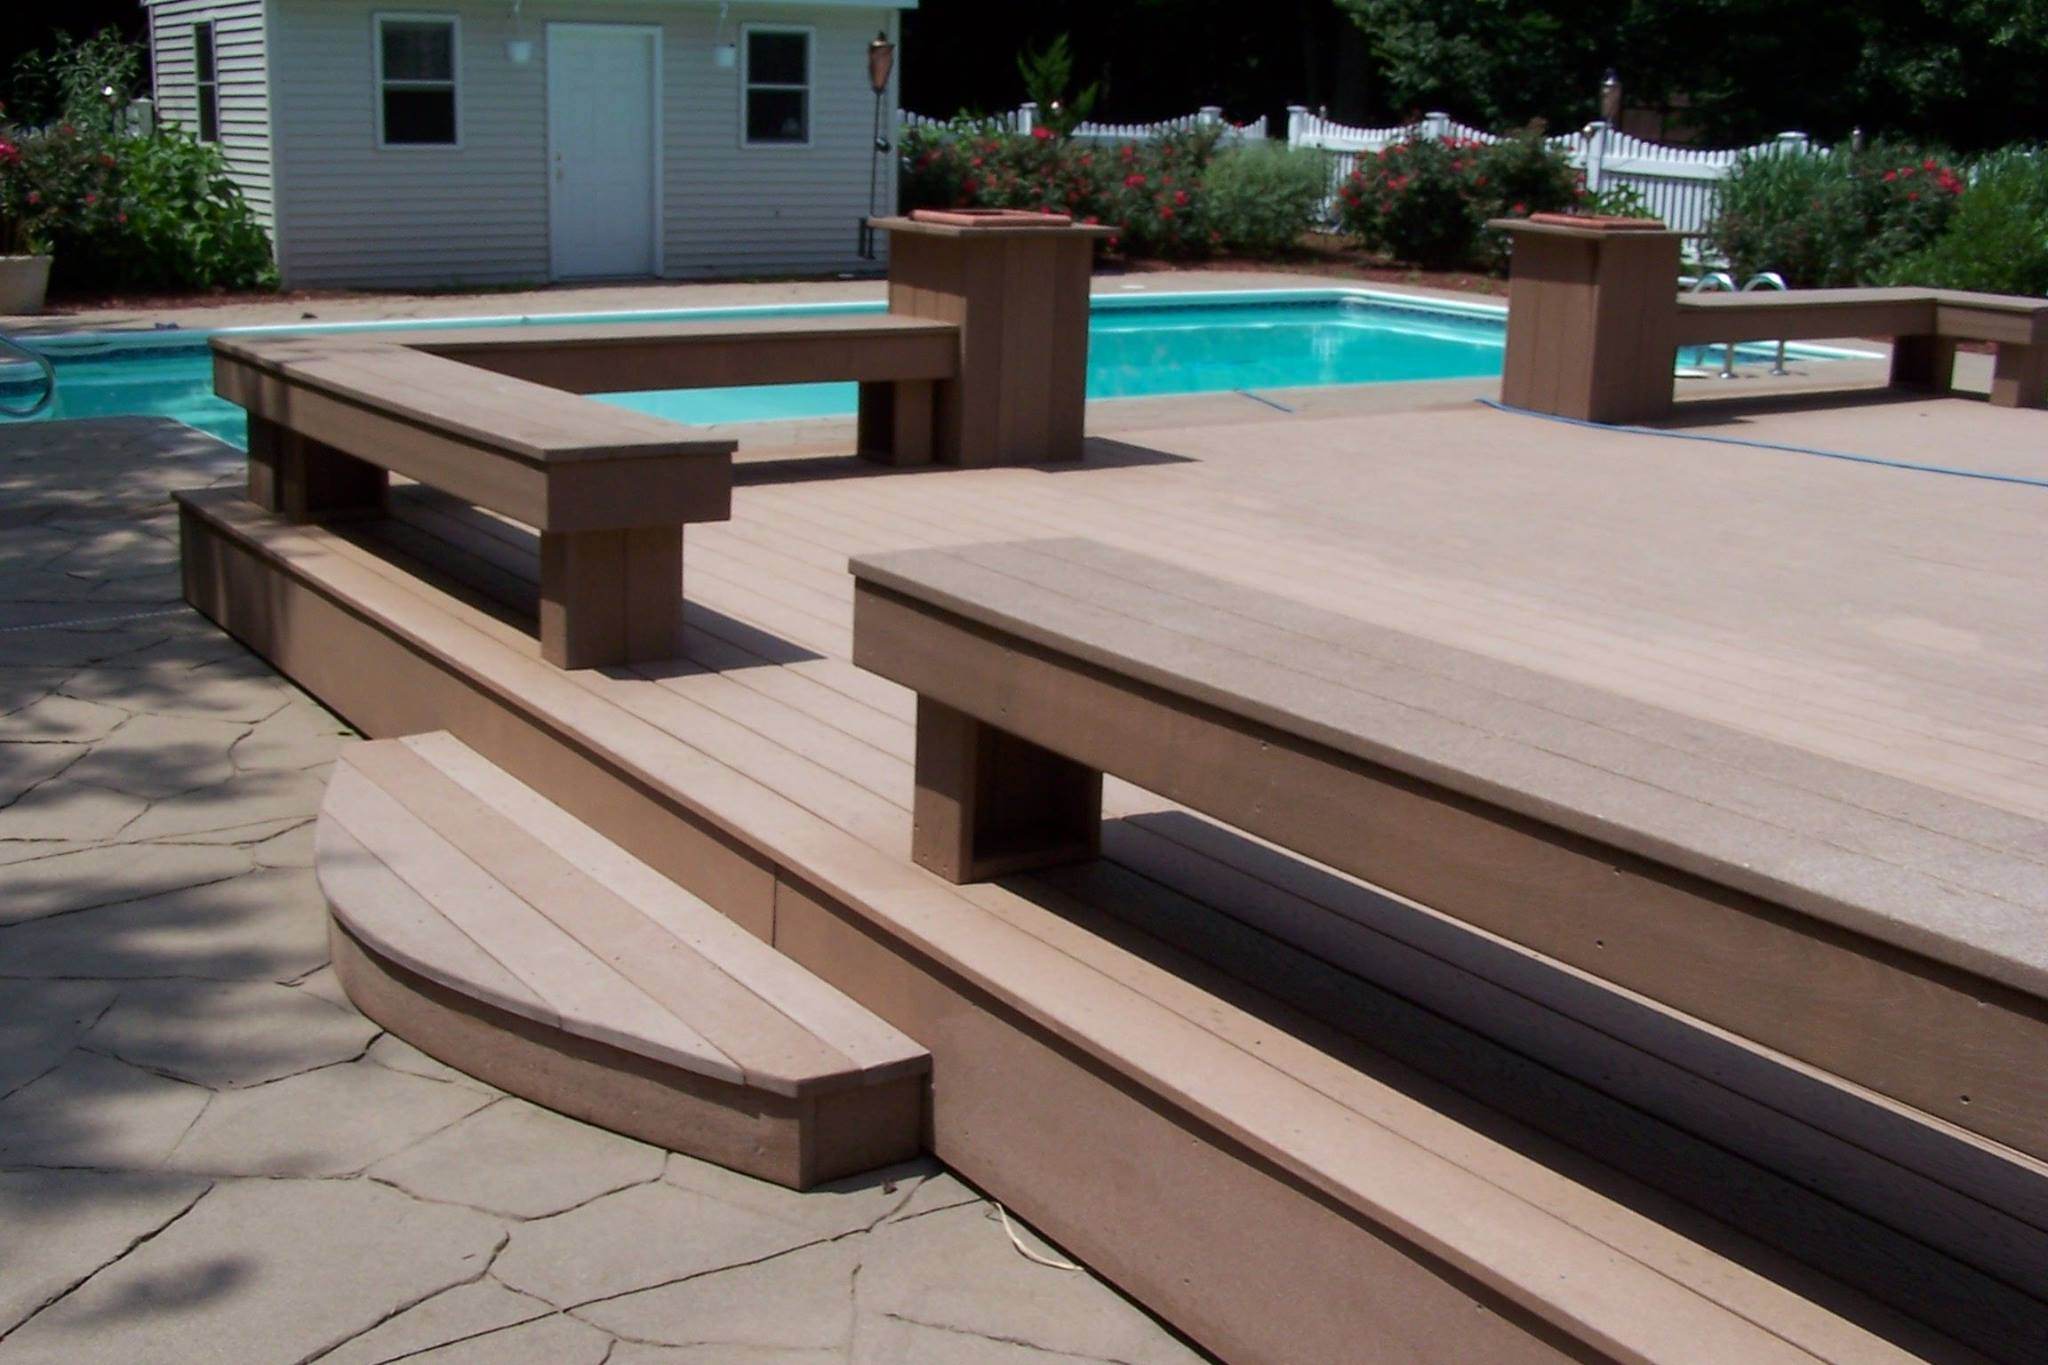 new deck built in North Haven, CT